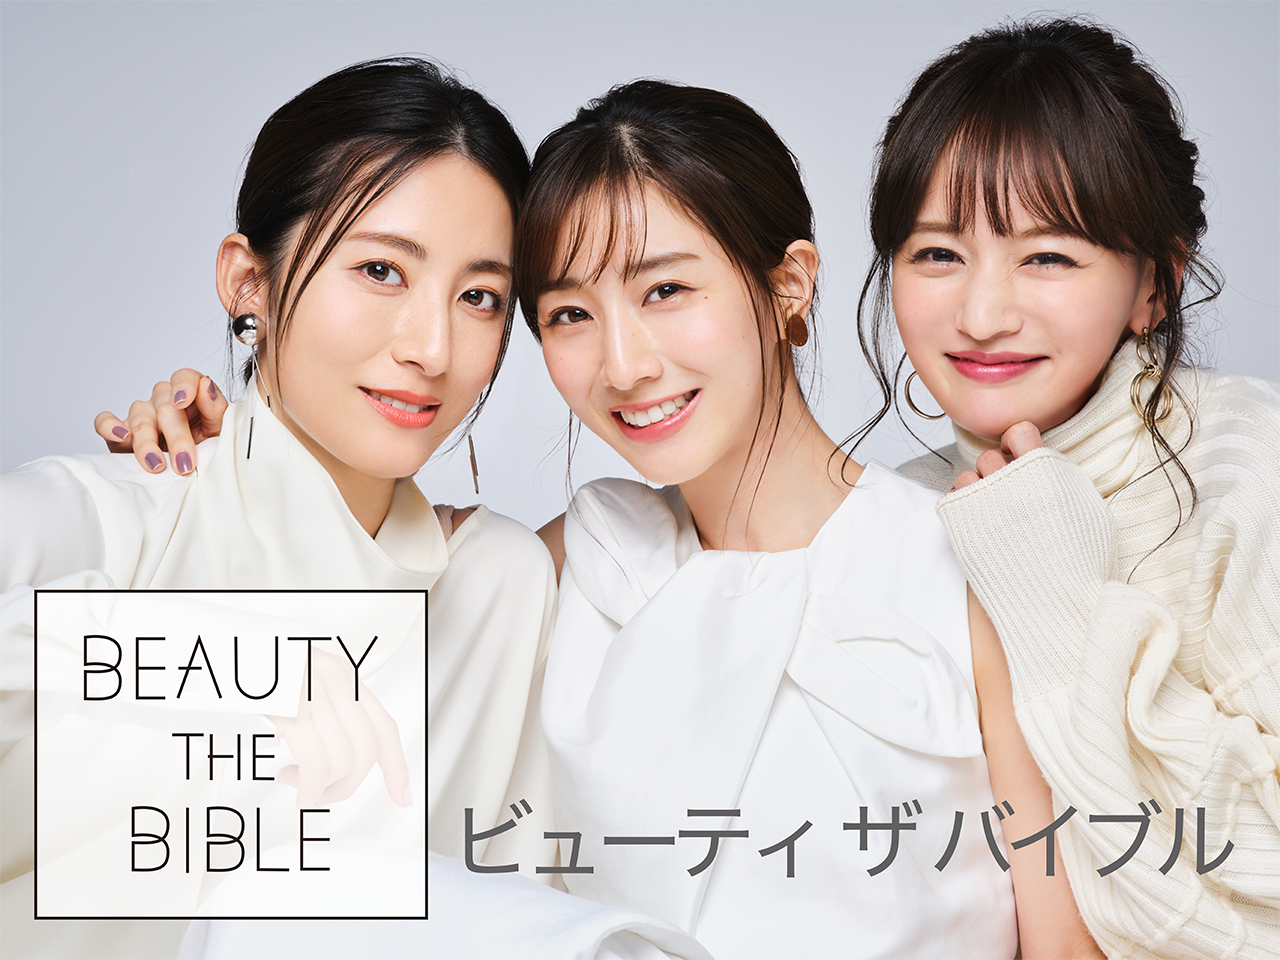 BEAUTY THE BIBLE